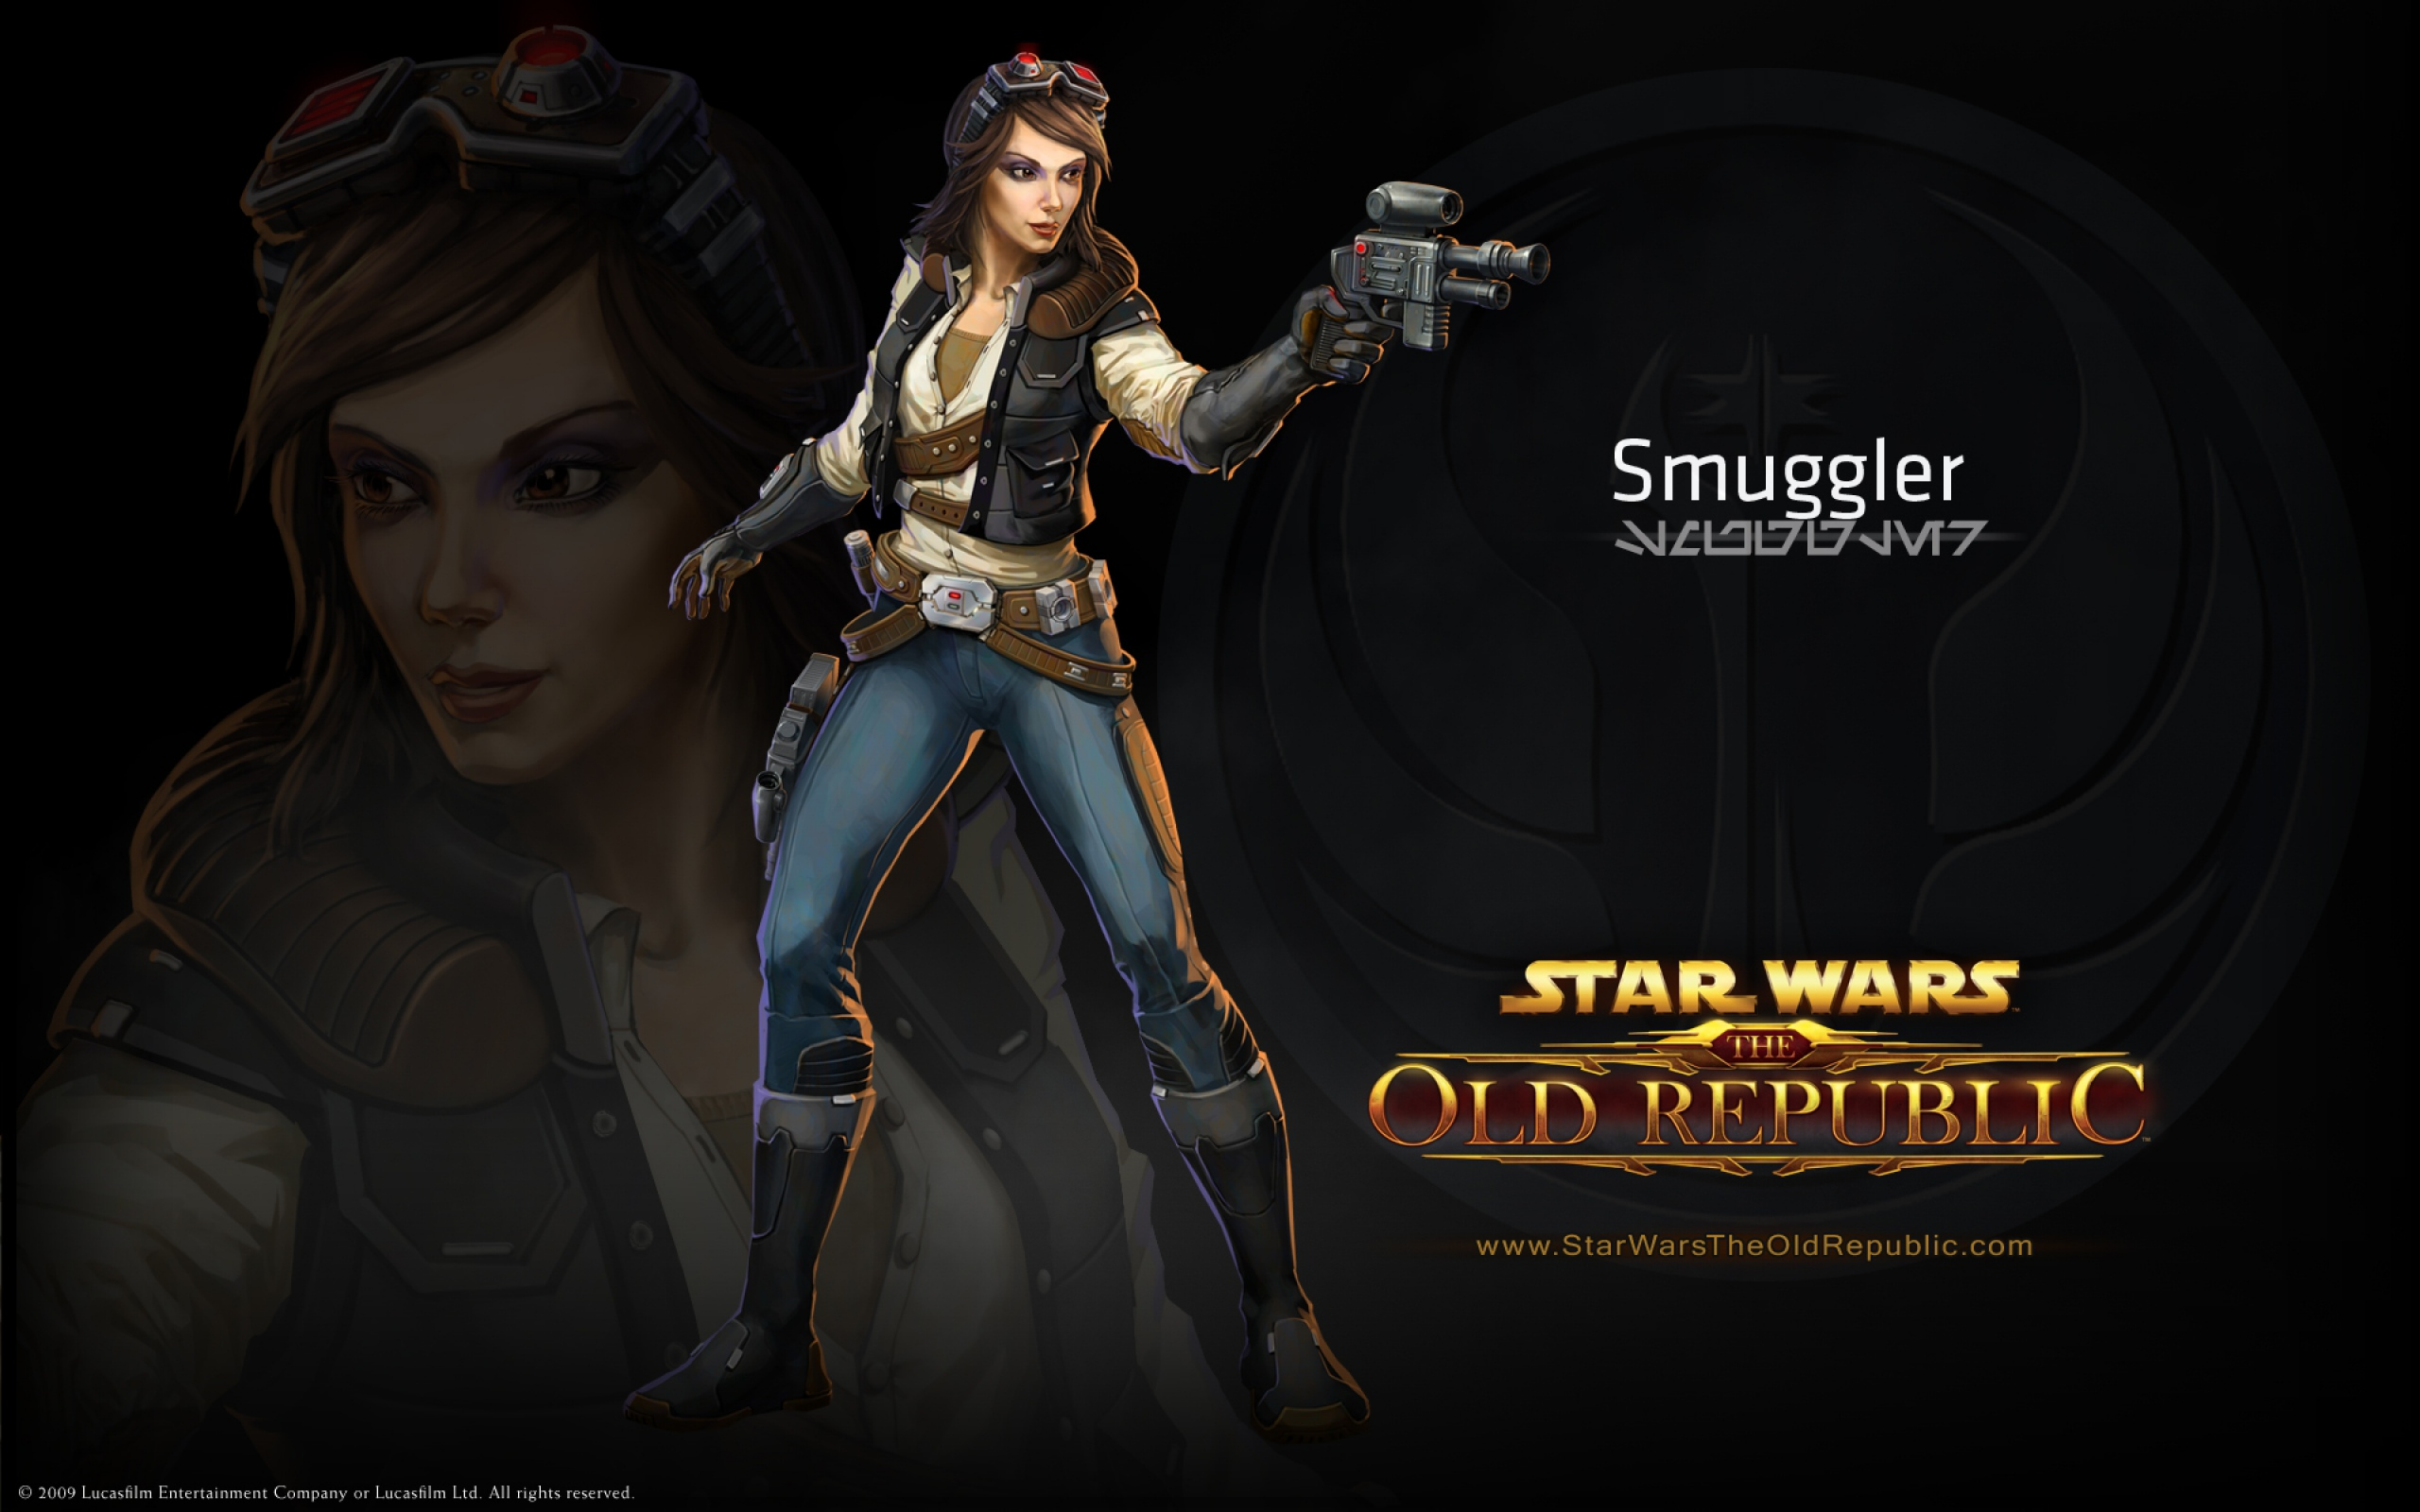 Star Wars The Old Republic Wallpaper Star Wars The Old Republic Leia 1260142 Hd Wallpaper Backgrounds Download